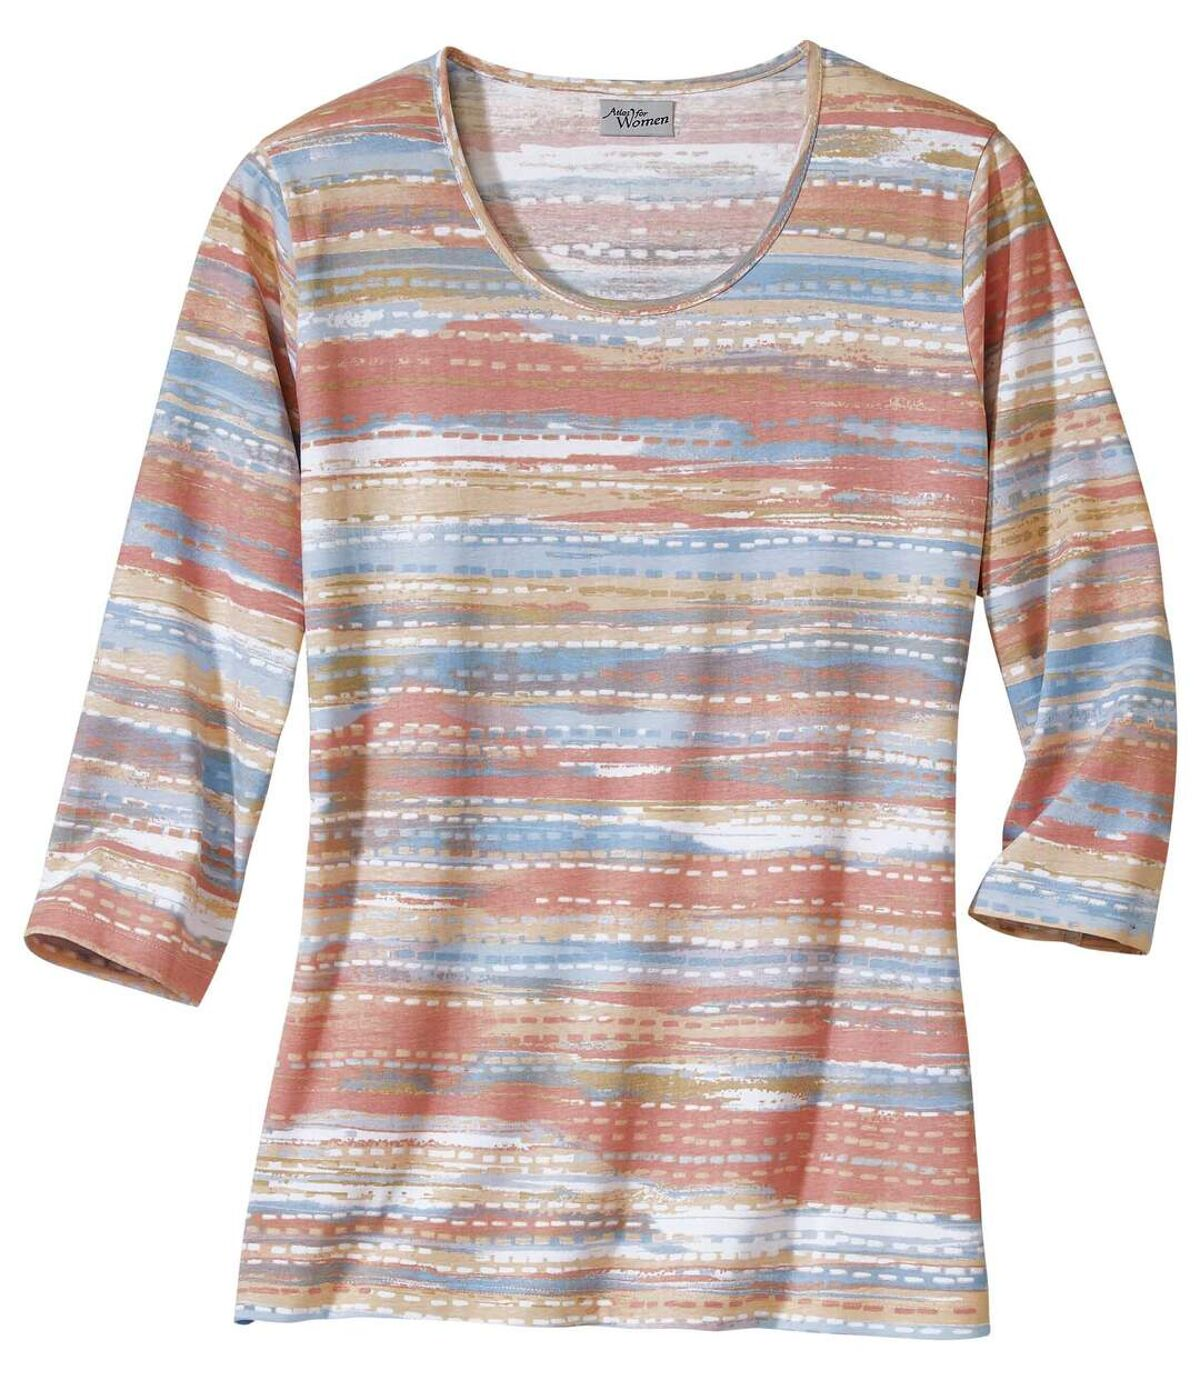 Women's Pink and Blue Patterned Printed Top Atlas For Men